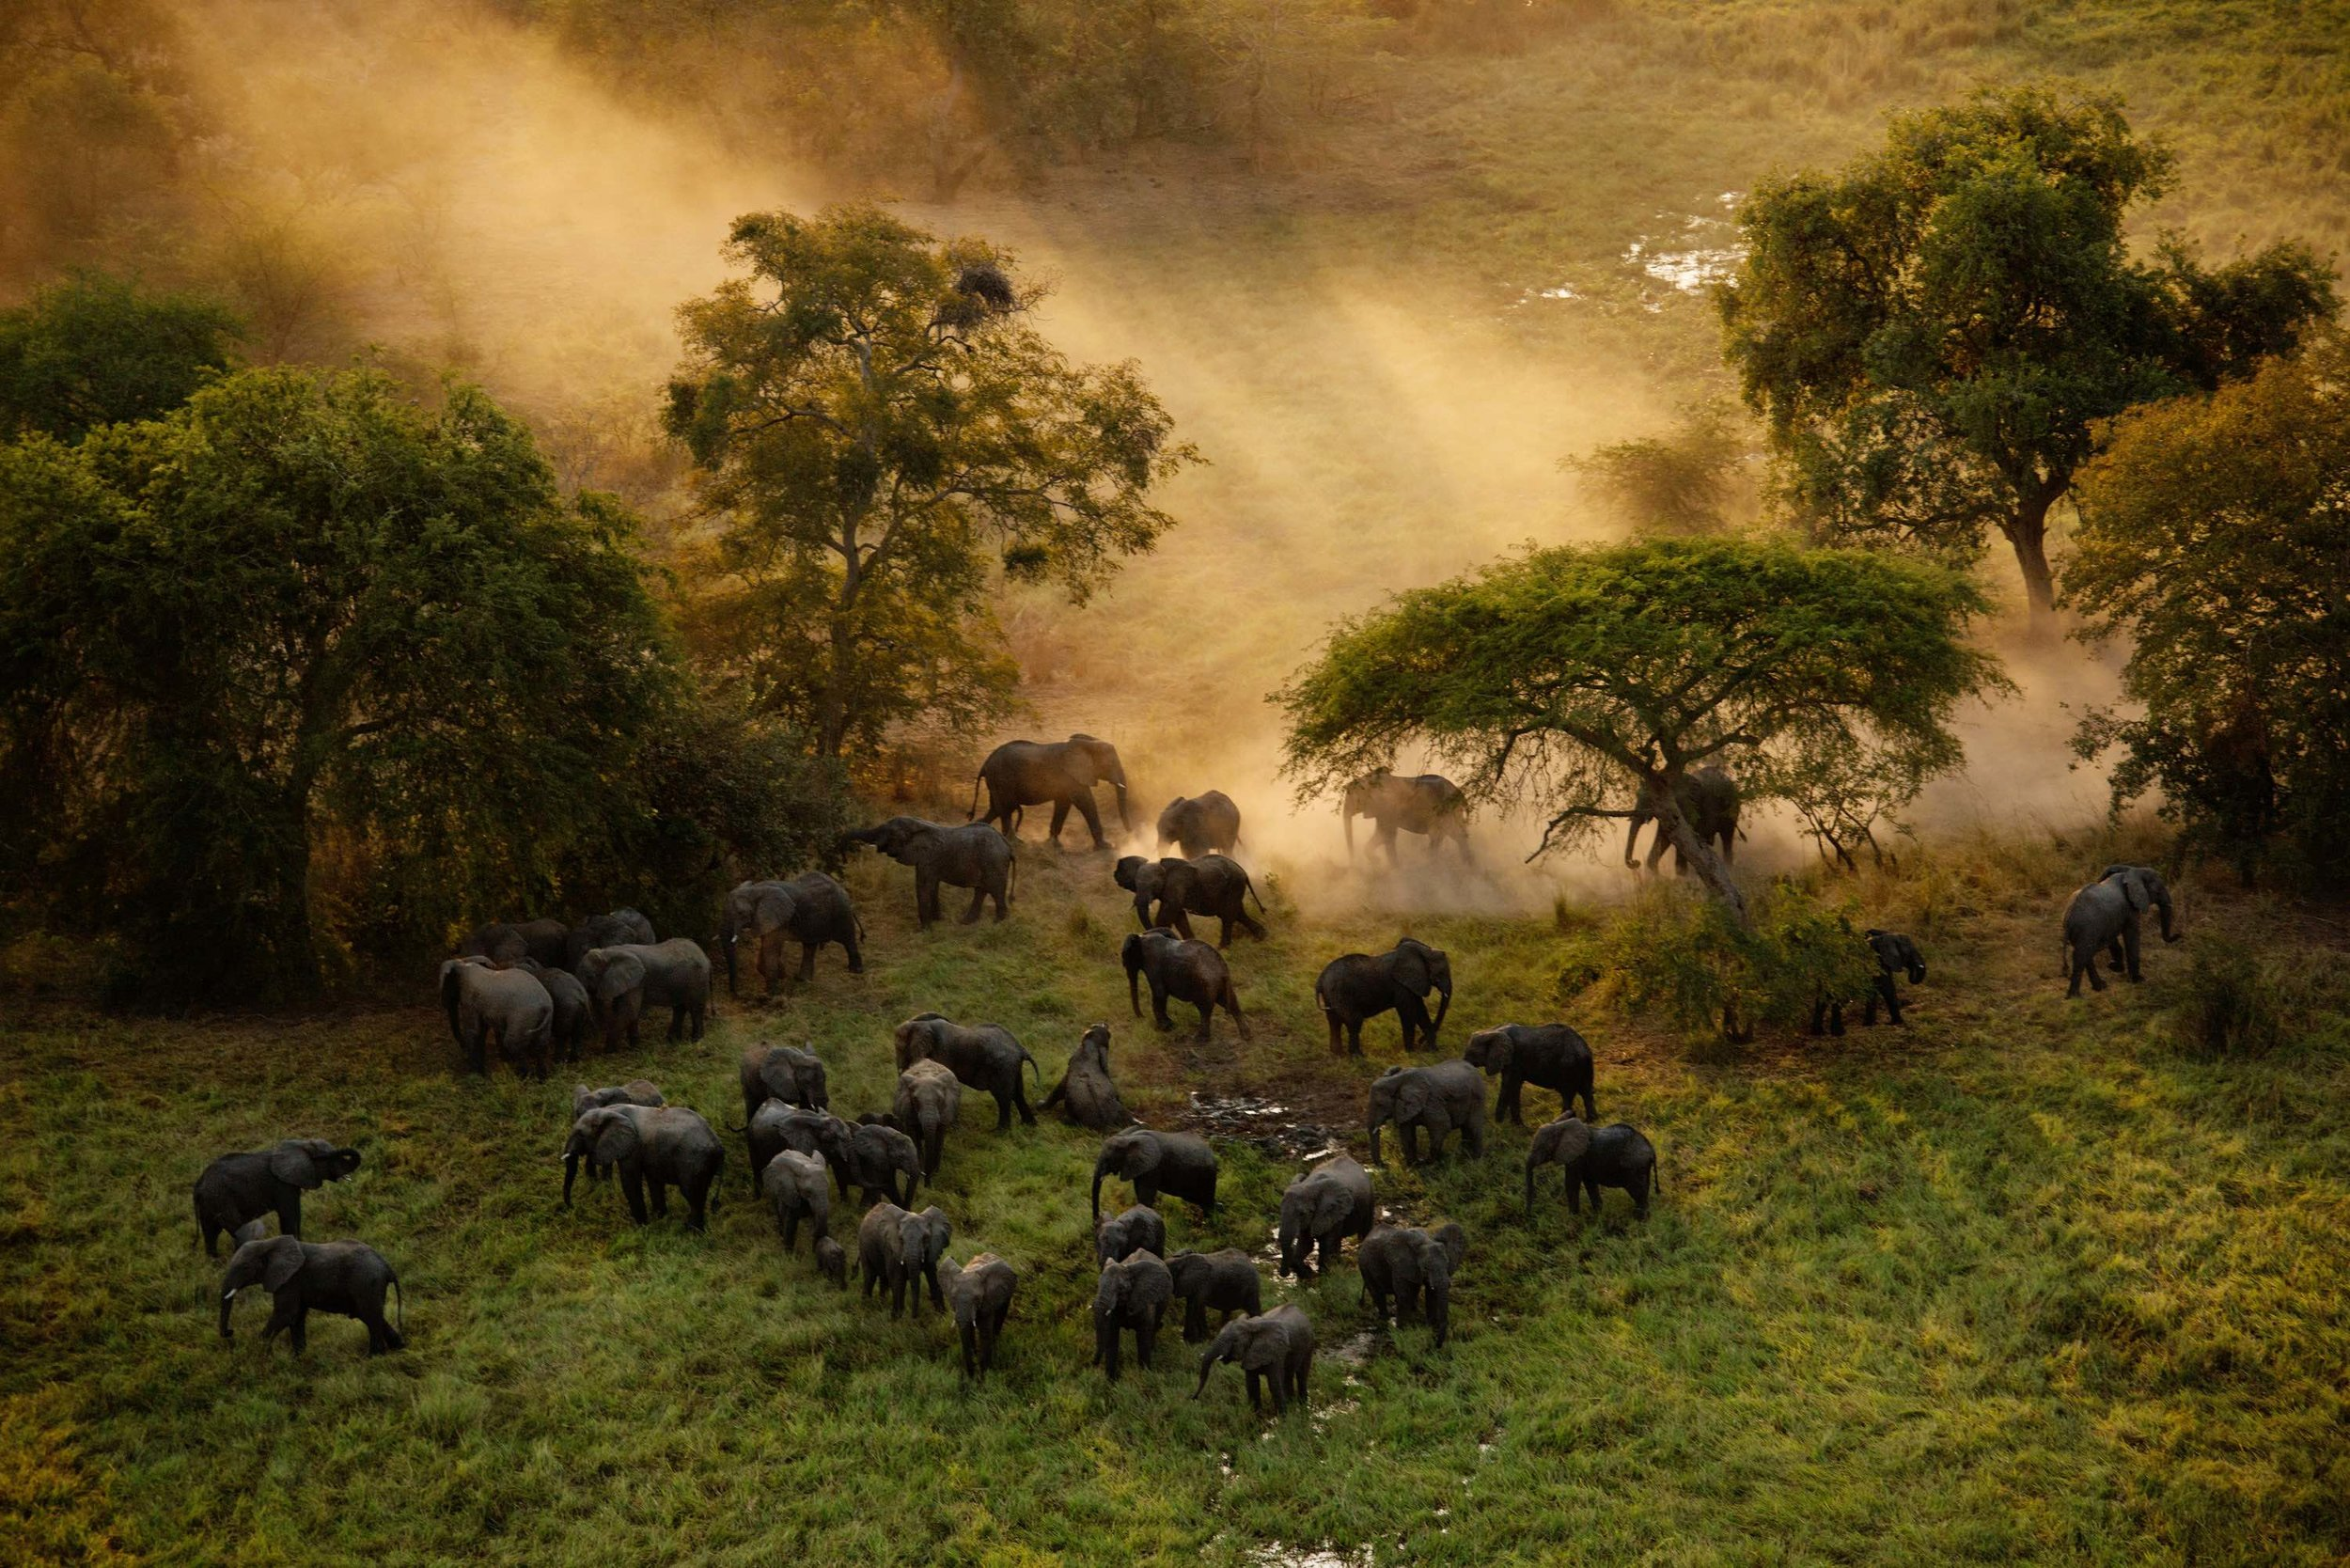 According to the Great Elephant Survey, there are less than 800 elephants left in the country of Chad. The elephant population in Zakouma National Park in Chad plummeted from approximately 4,000 in 2005 to just 450 in 2010 due to massive poaching. After an intensive anti-poaching program was implemented, elephant numbers stabilized and calves are being born again. Photograph: Kate Brooks.